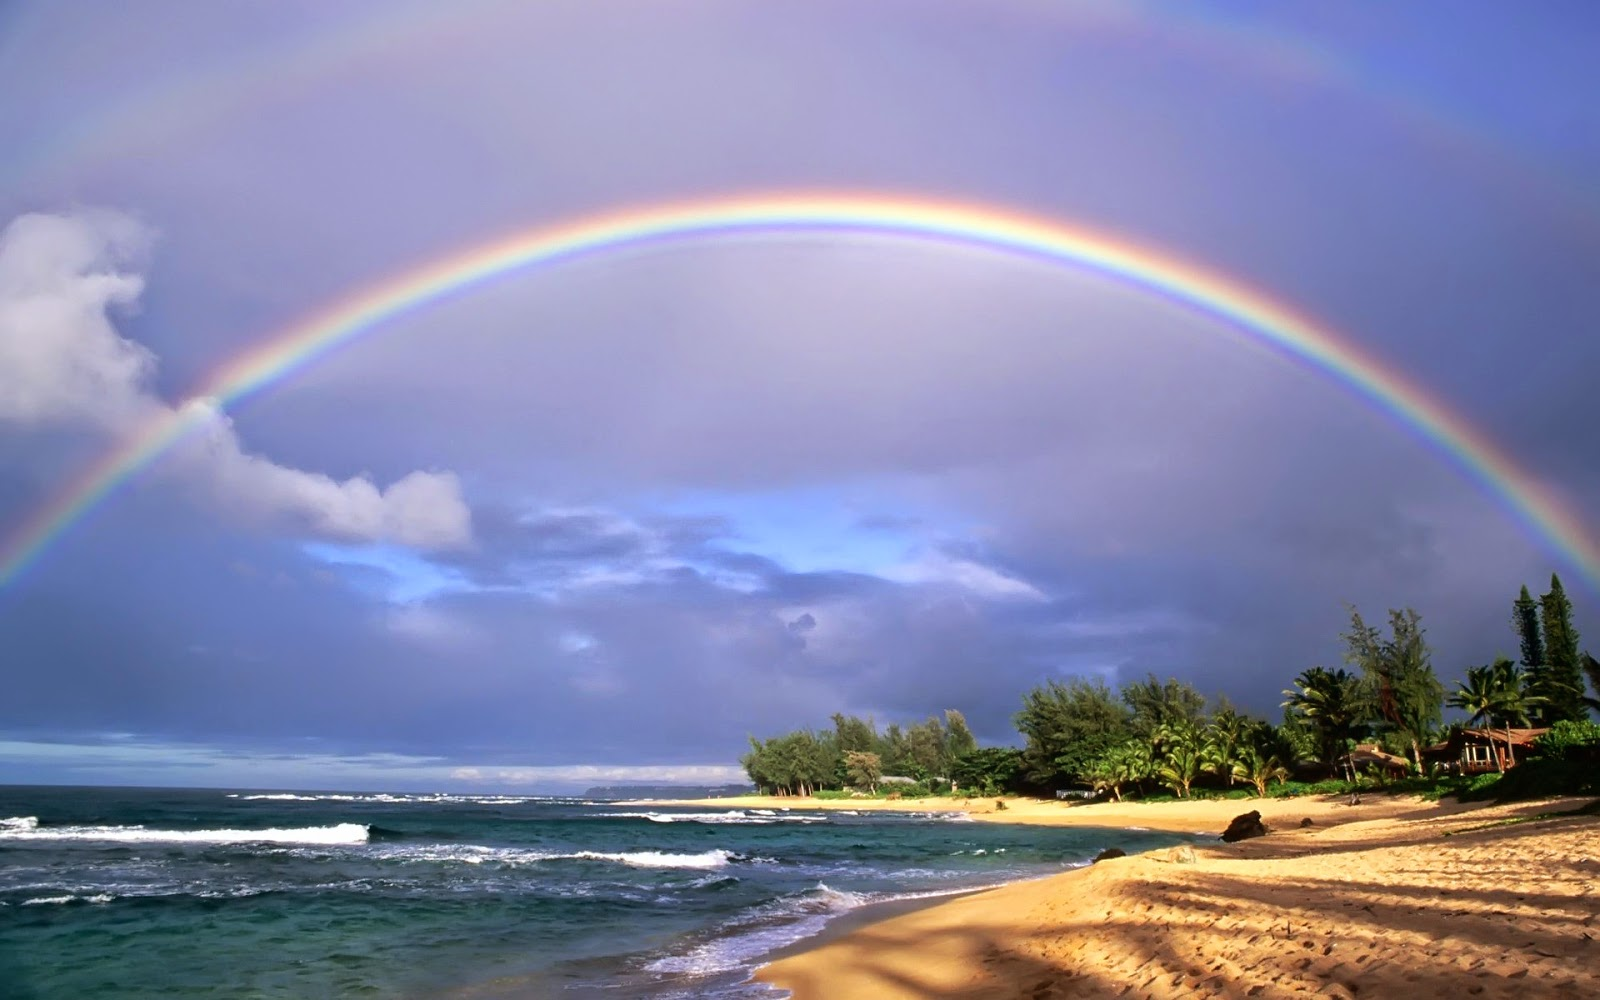 Ocean Rainbow wallpaper for your desktop